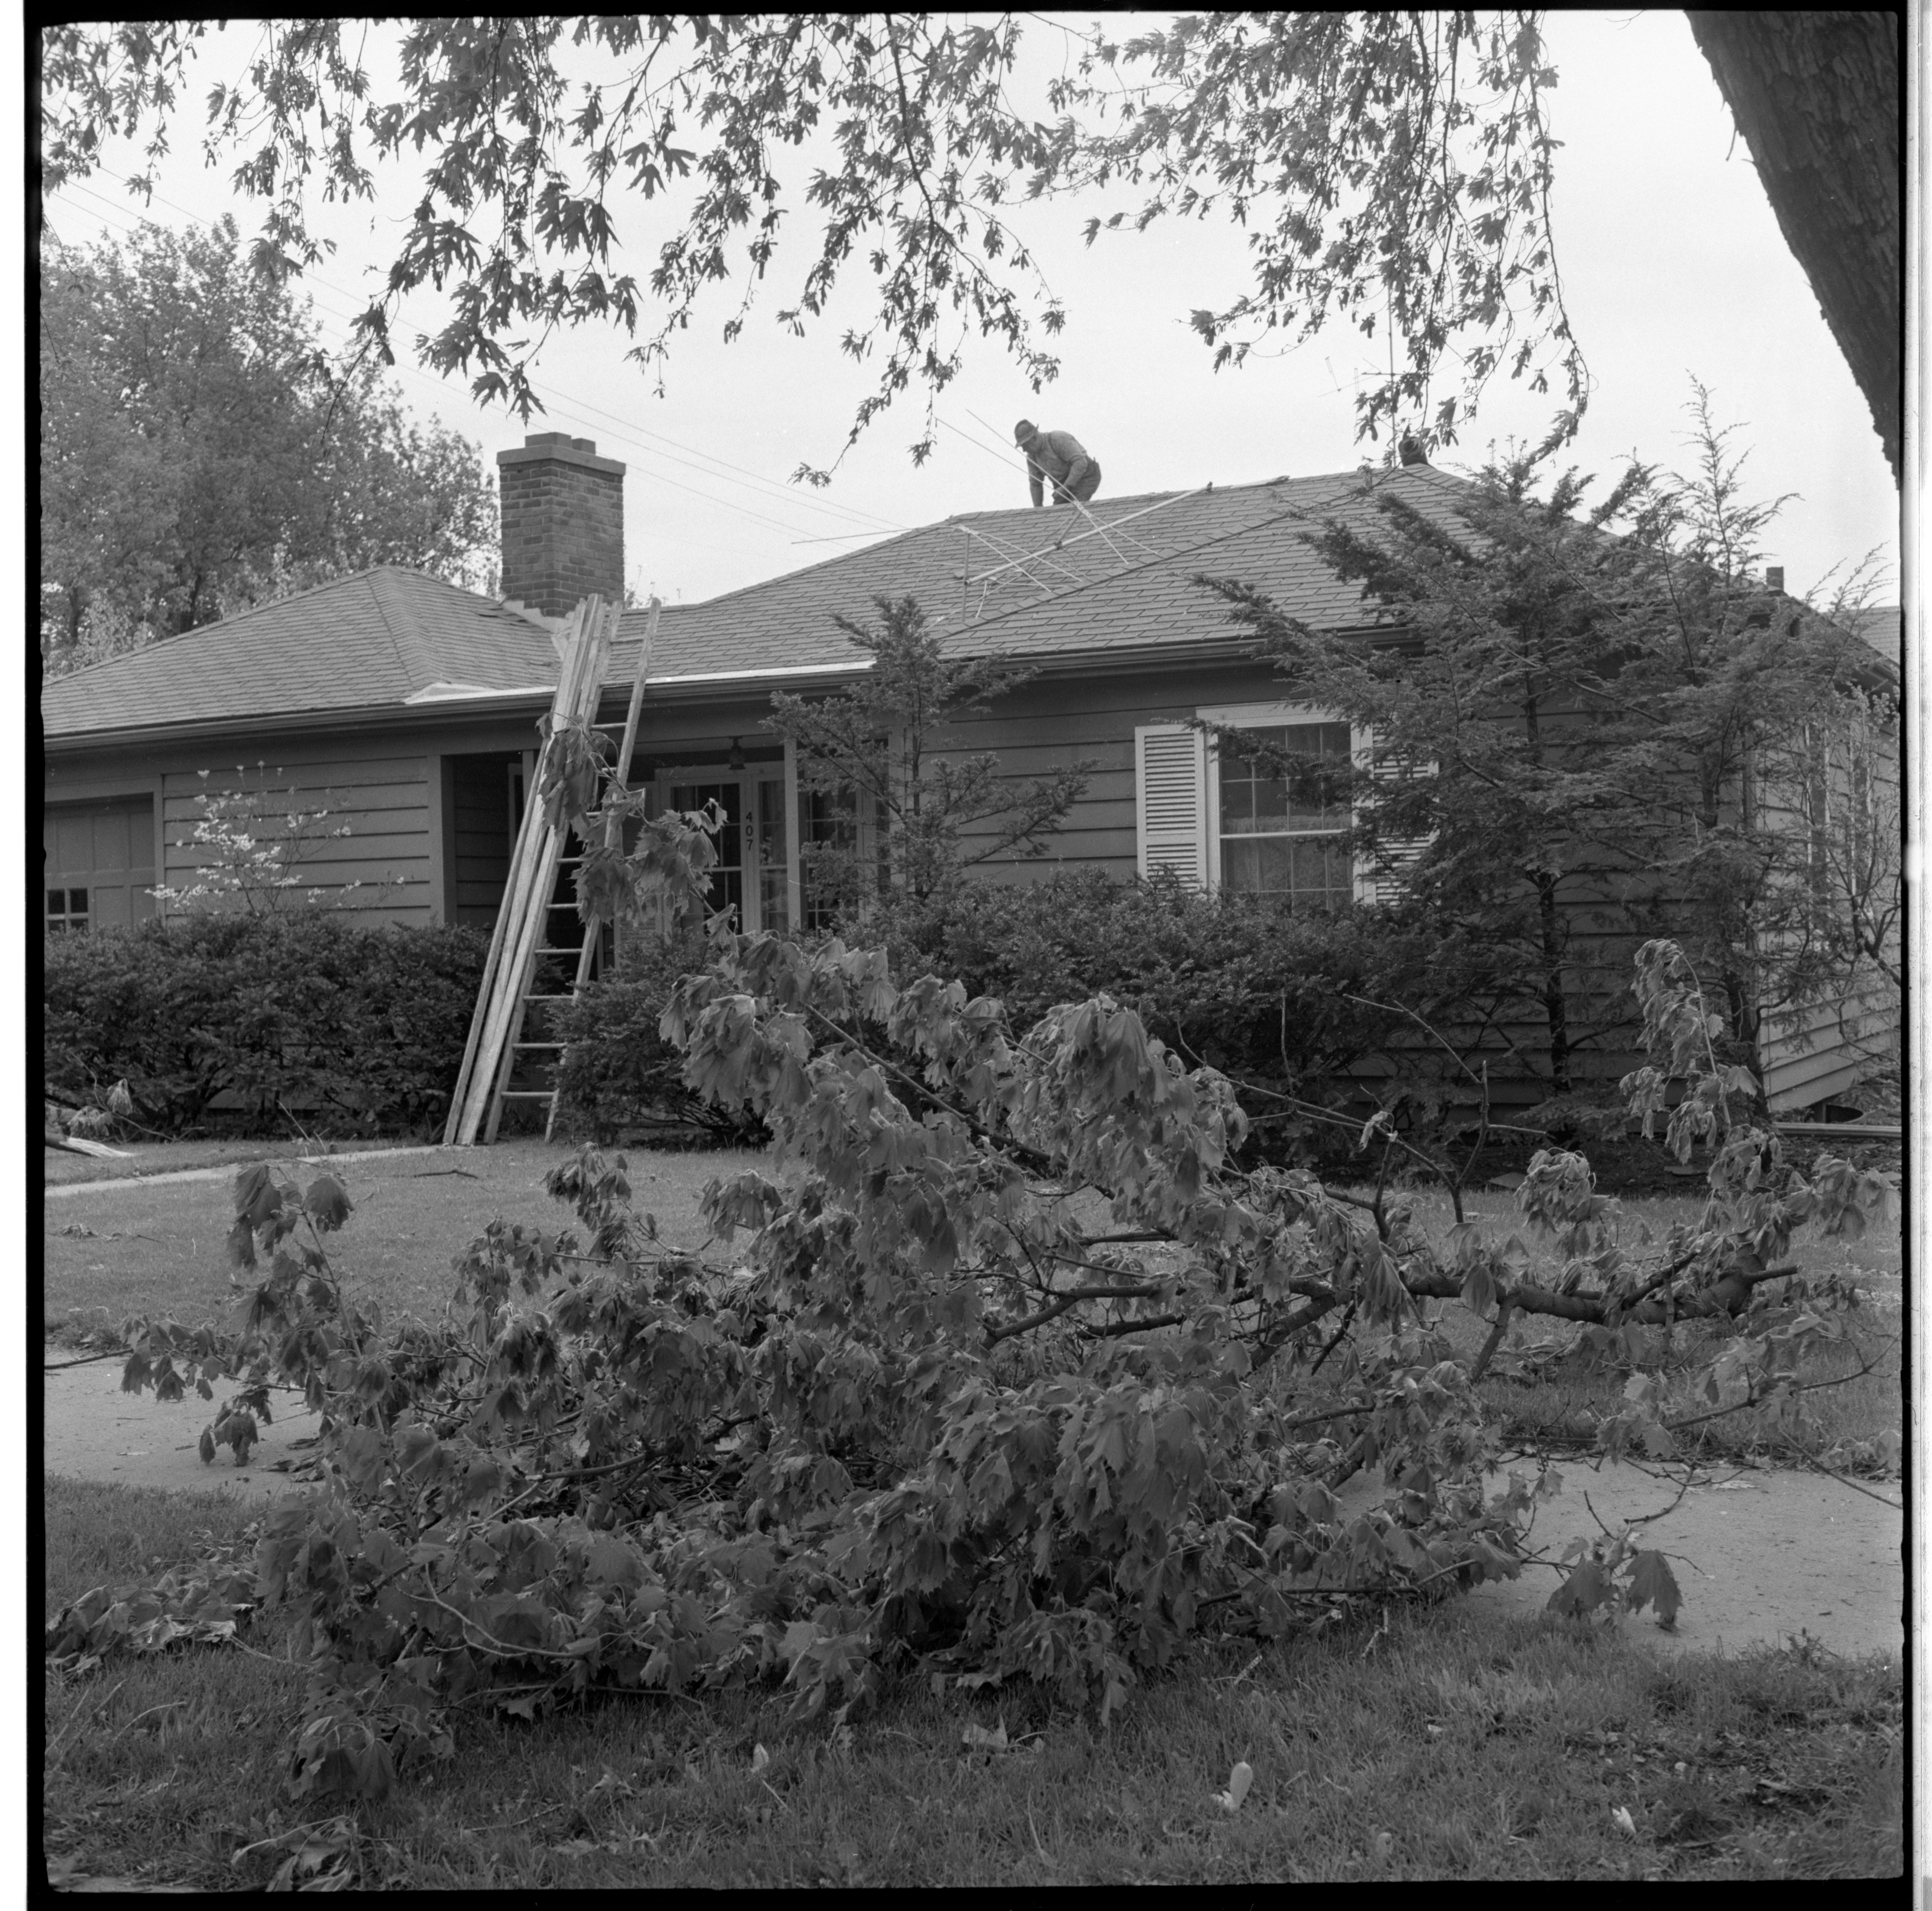 A Resident Inspects His Home For Damage Caused By The Windstorm, May 1959 image